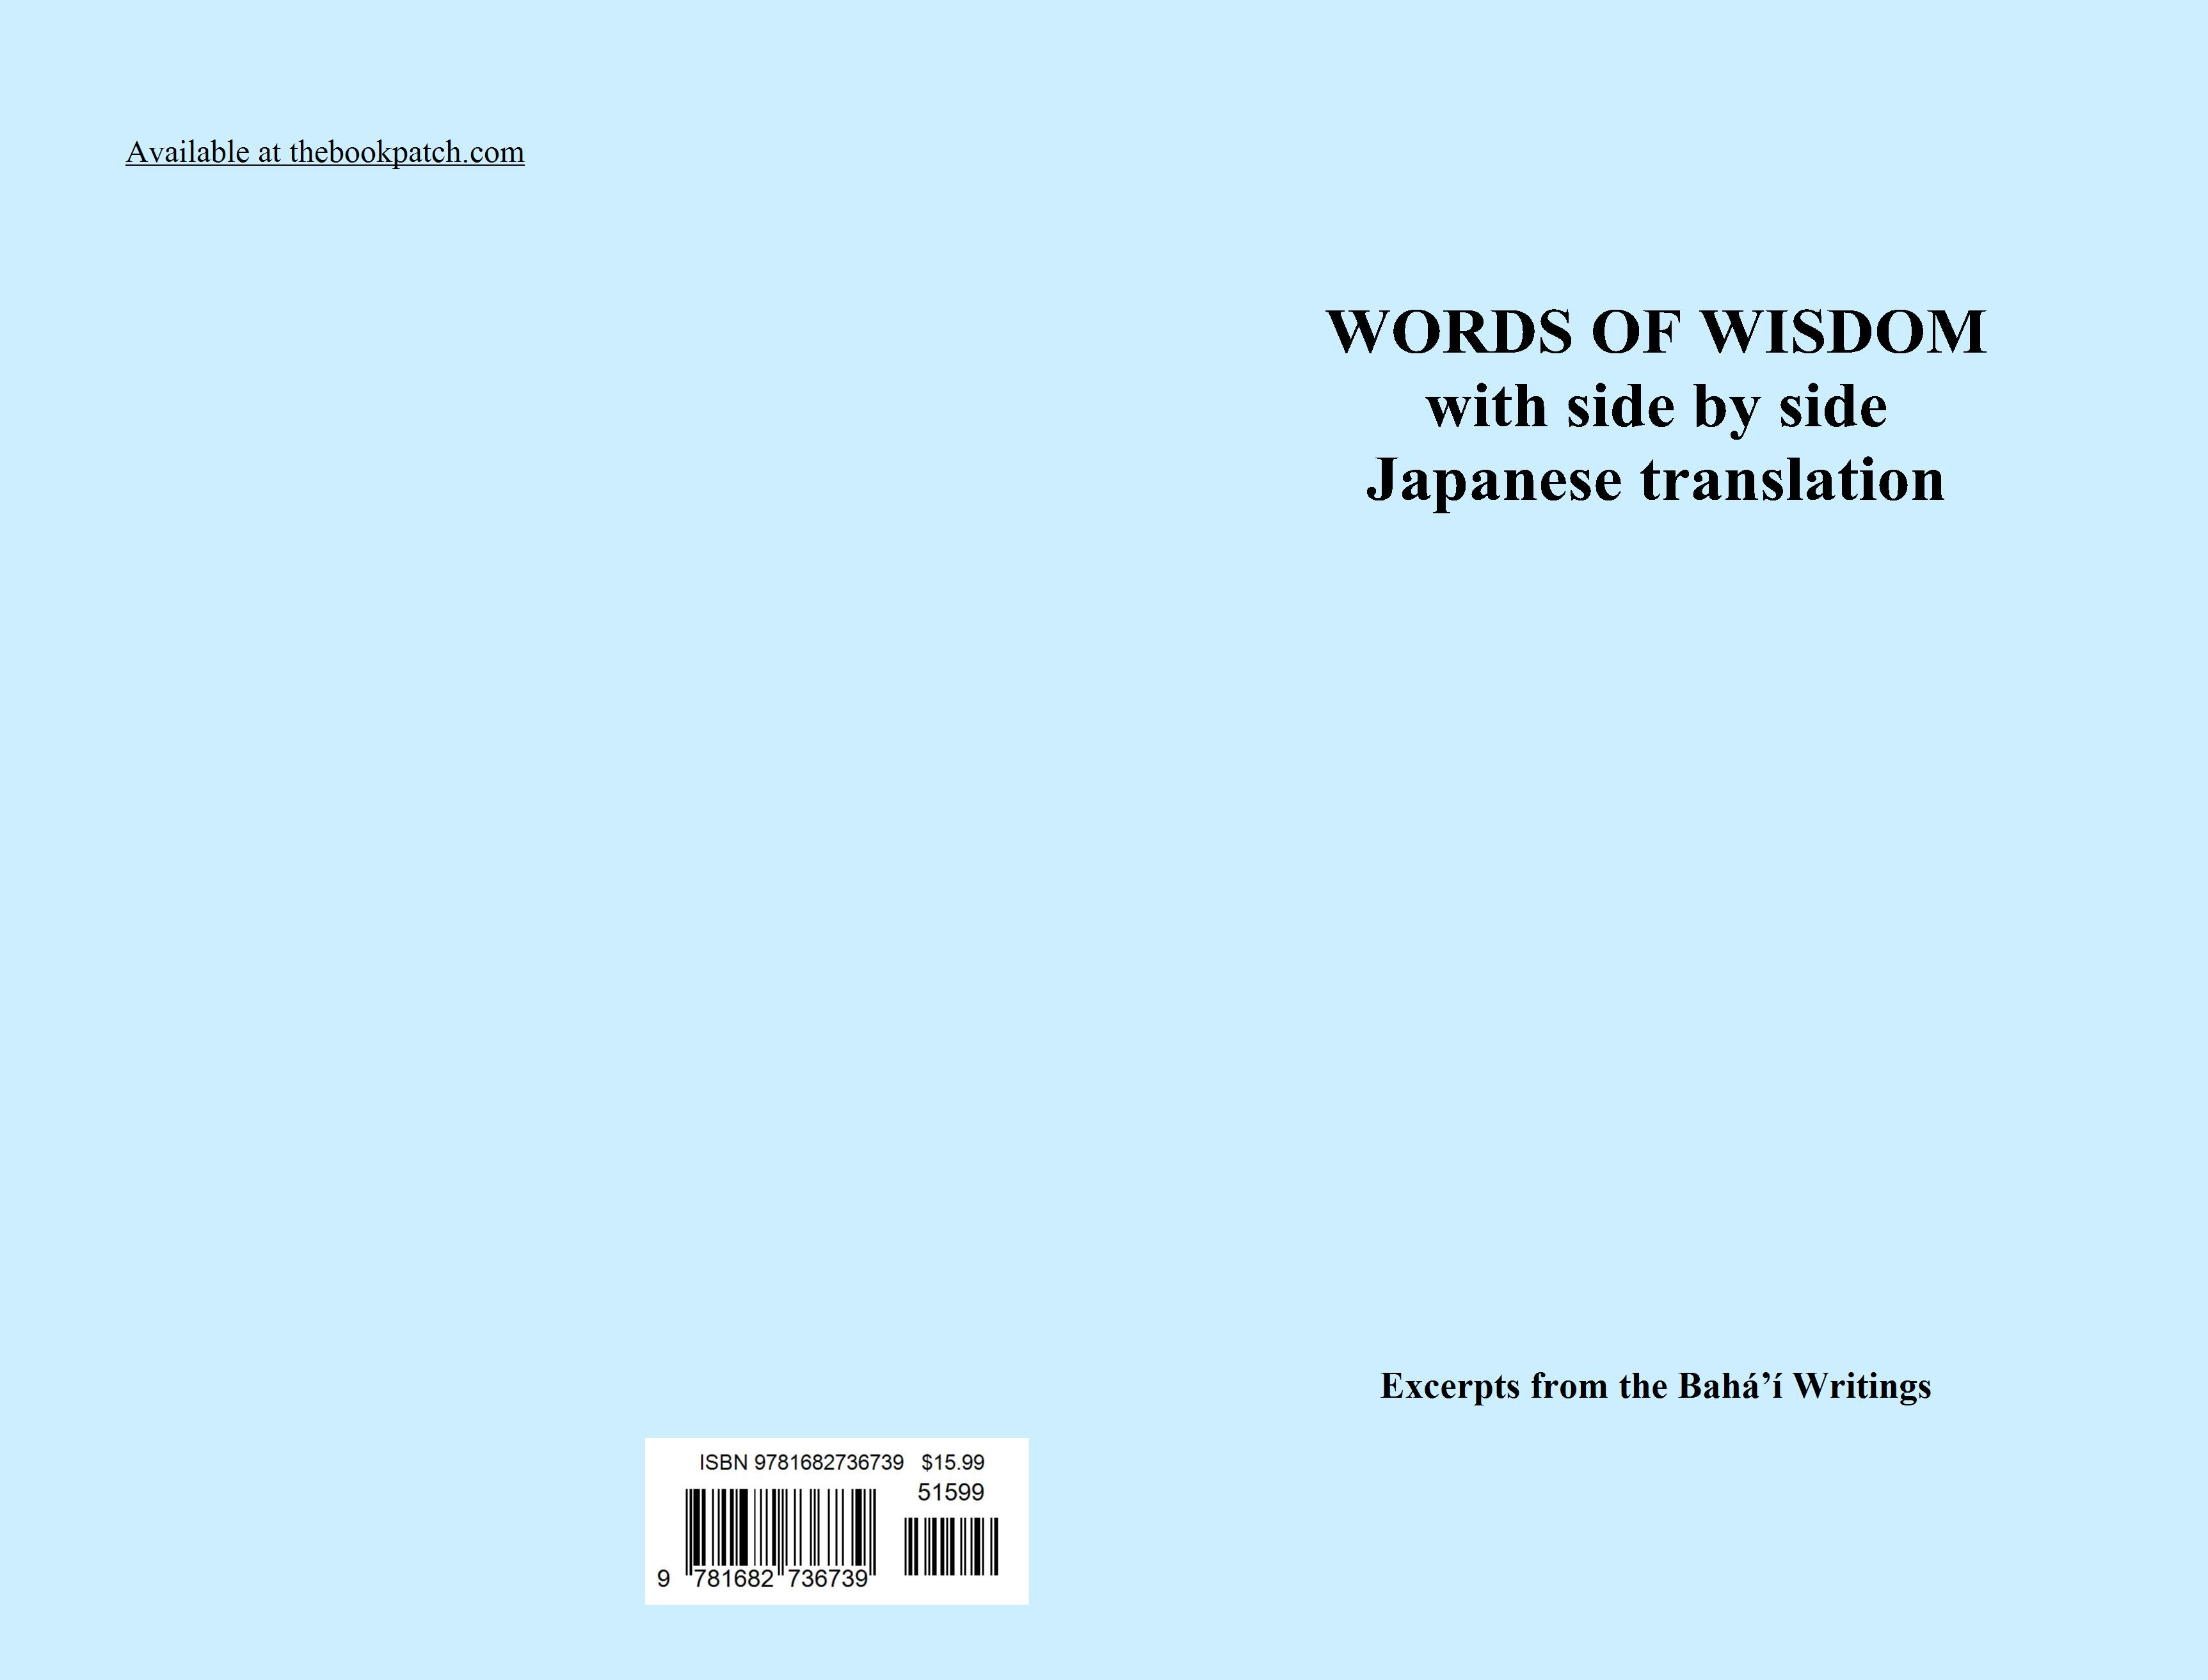 WORDS OF WISDOM with side by side Japanese translation cover image